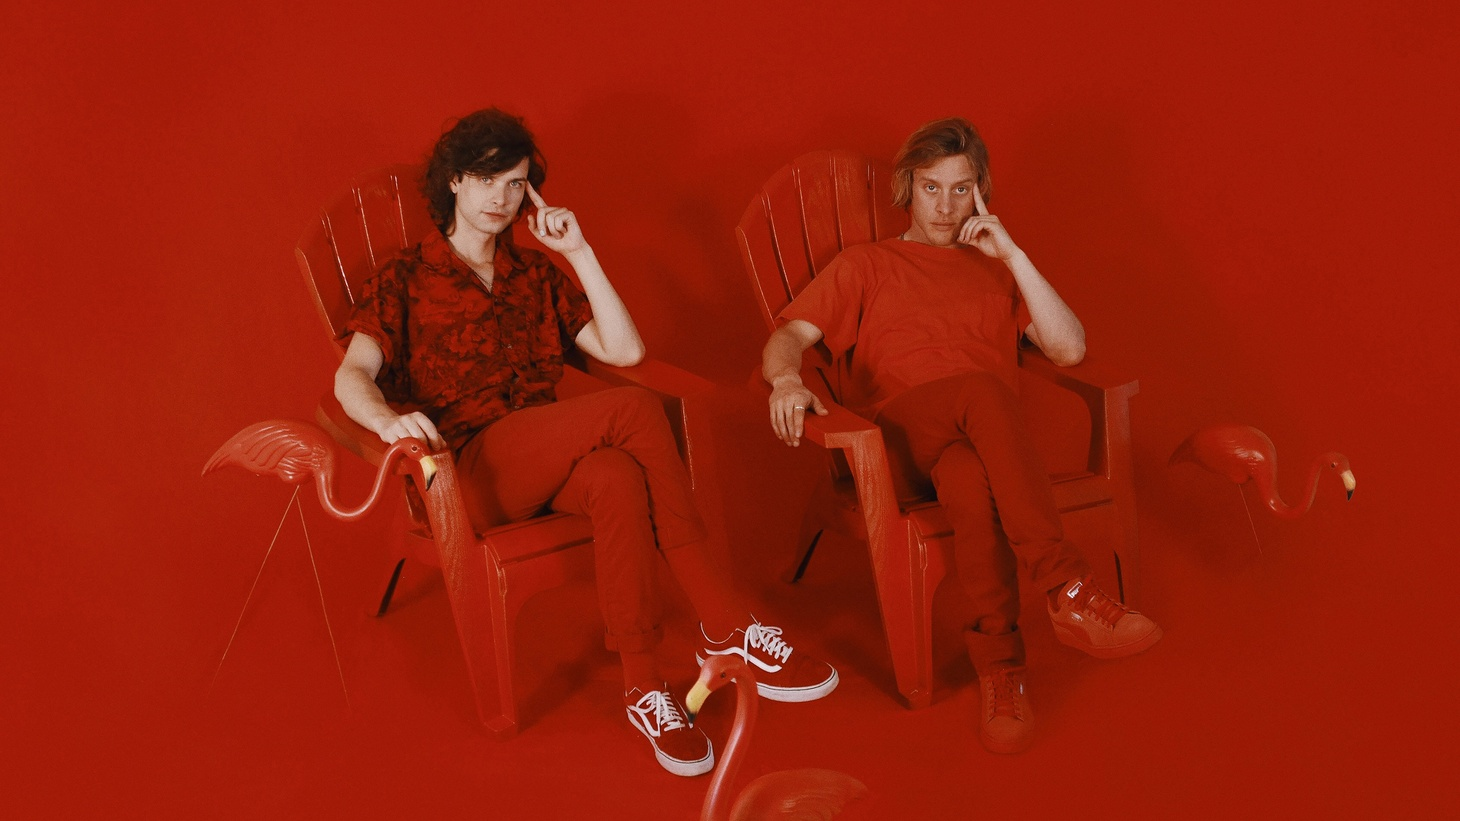 After a successful stint at SXSW in 2016, the duo making up Coast Modern got scooped up to support several bands, including BØRNS.